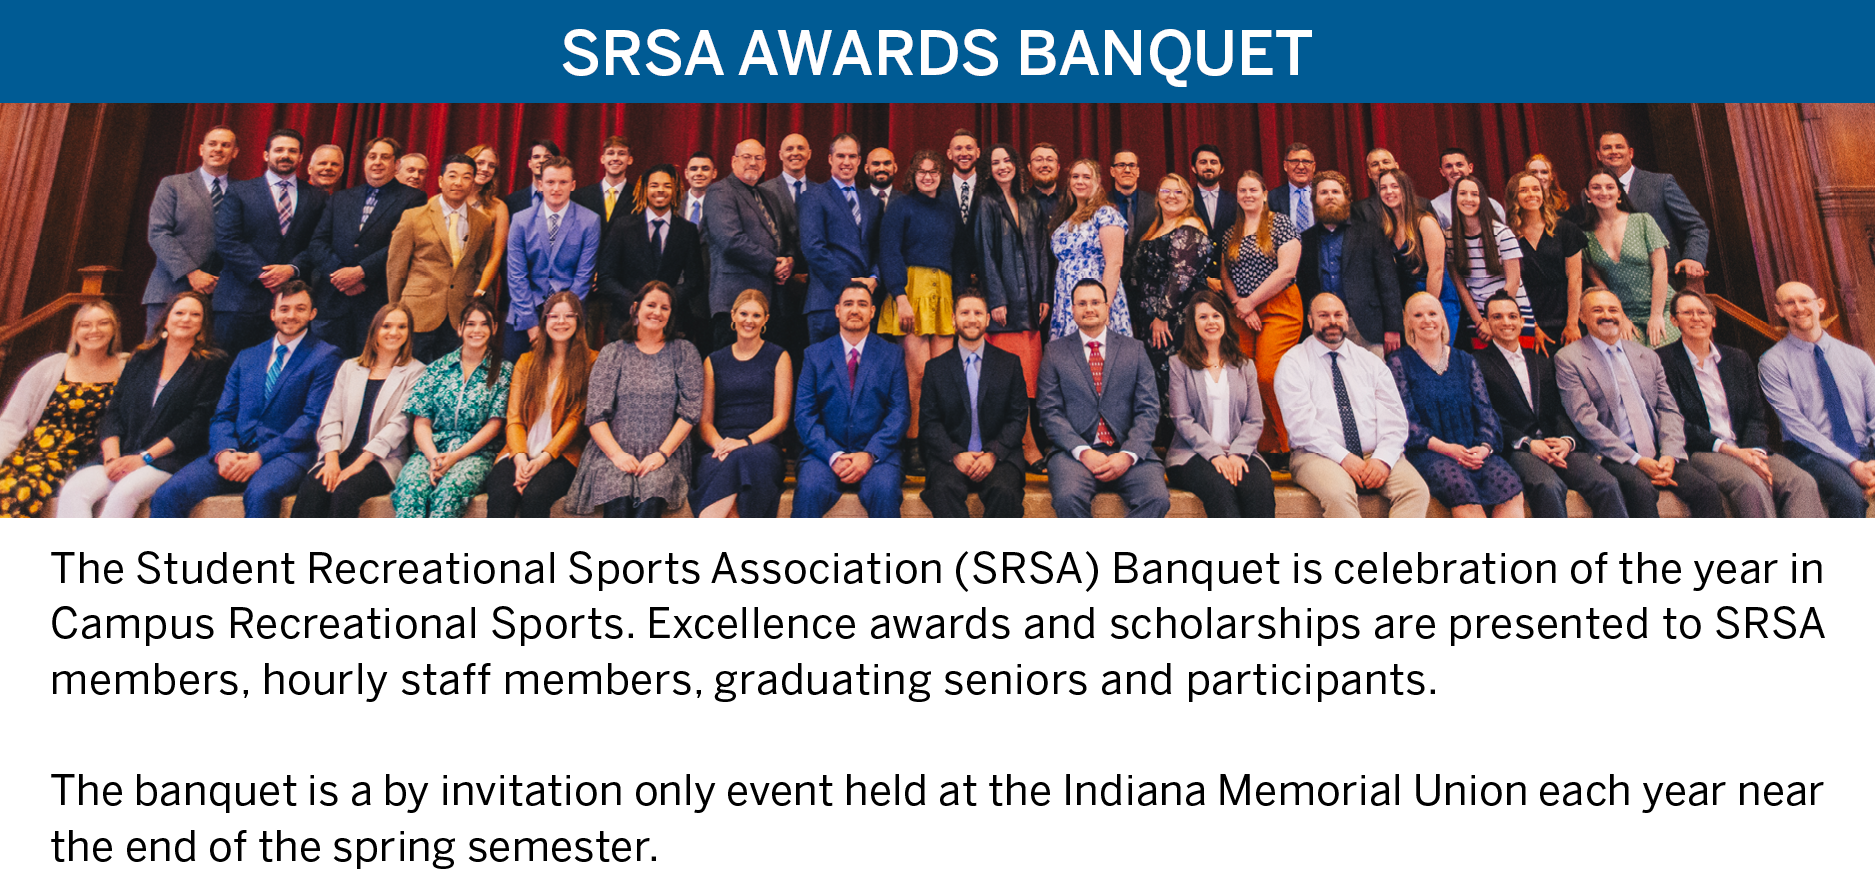 SRSA Awards Banquet